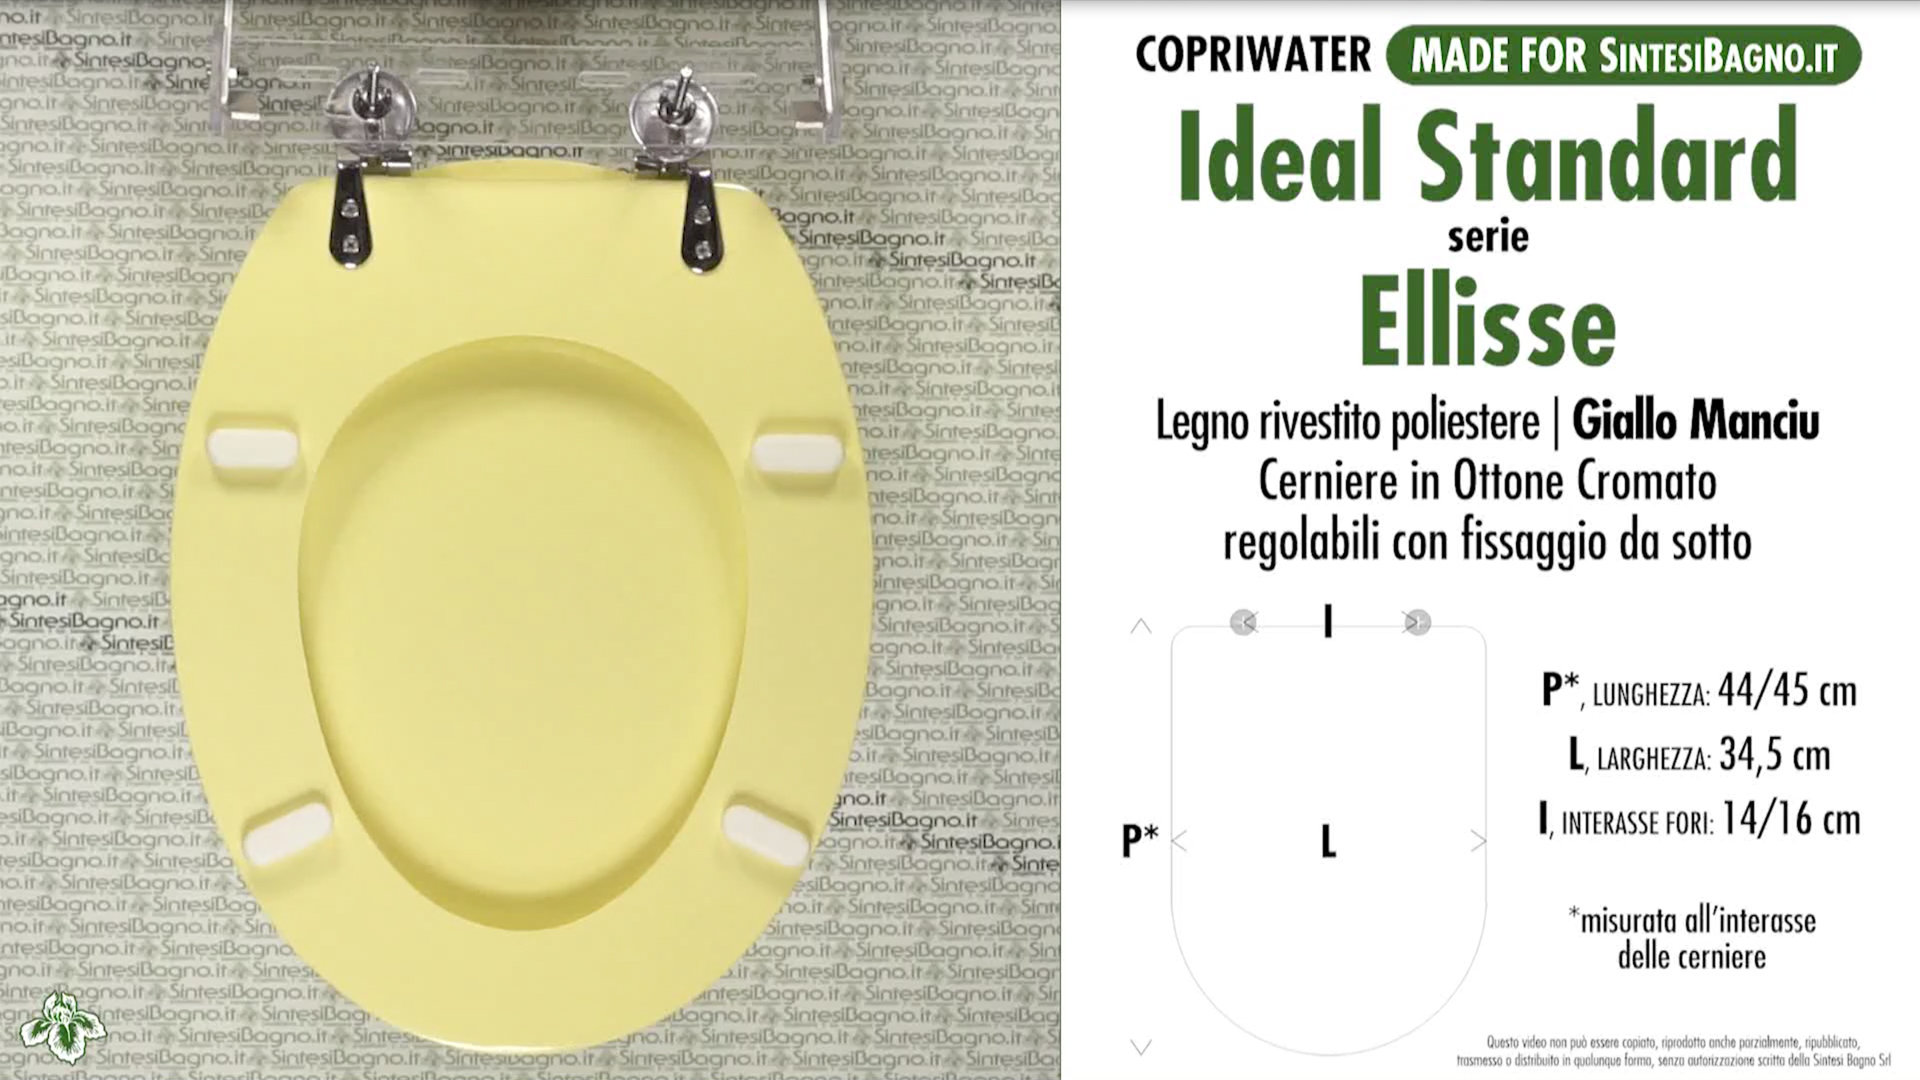 Copriwater per wc ellisse ideal standard giallo manciu for Misure copriwater ideal standard